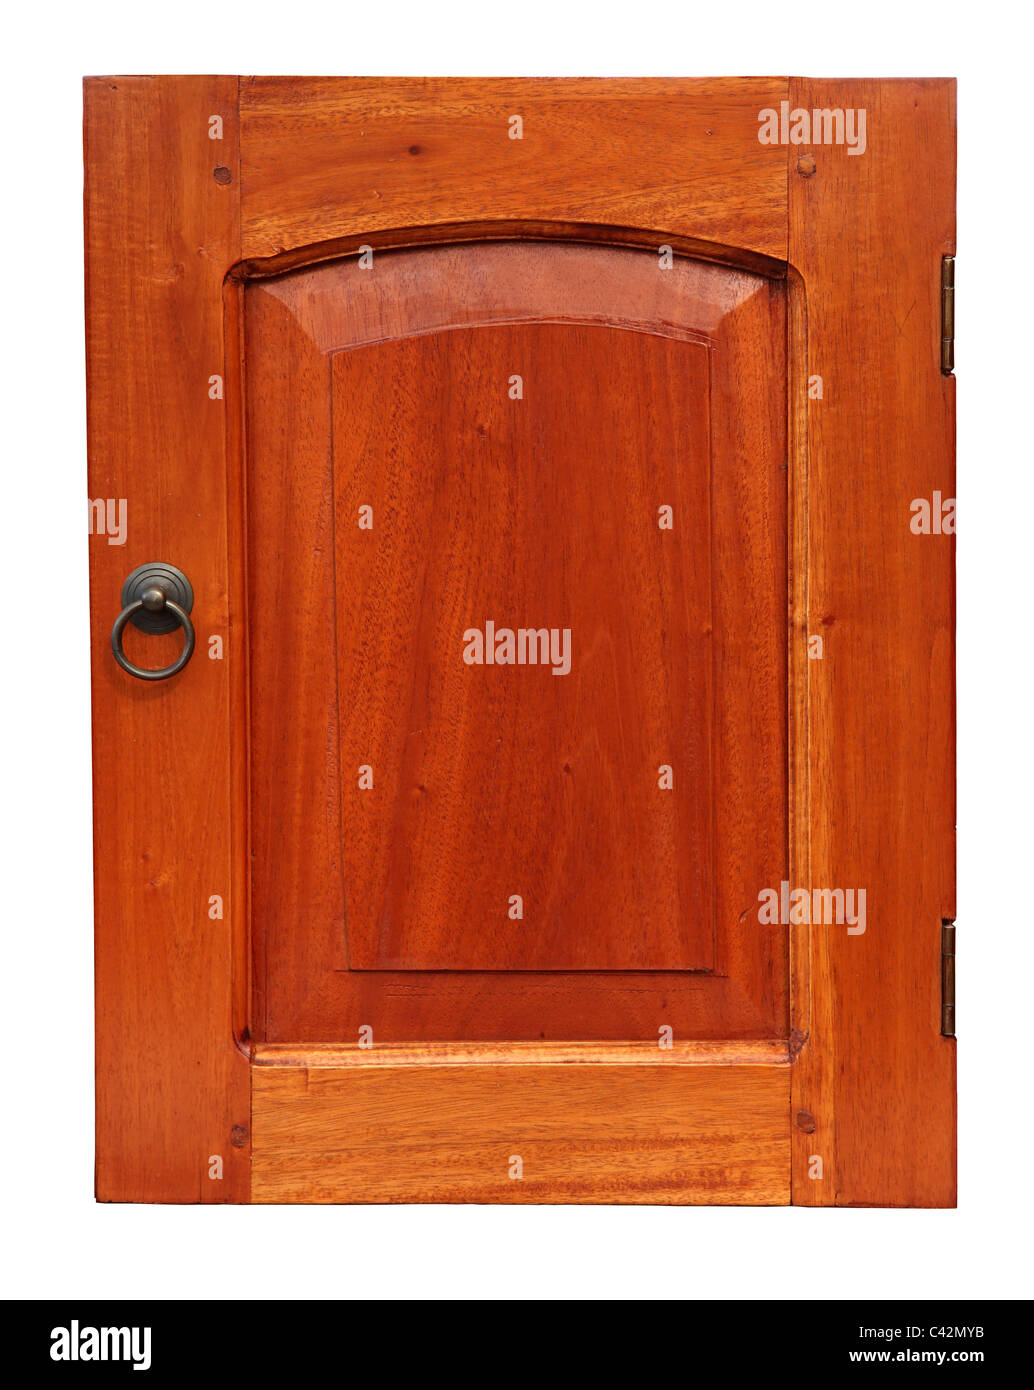 Wooden Cupboard Door Isolated on White Stock Photo